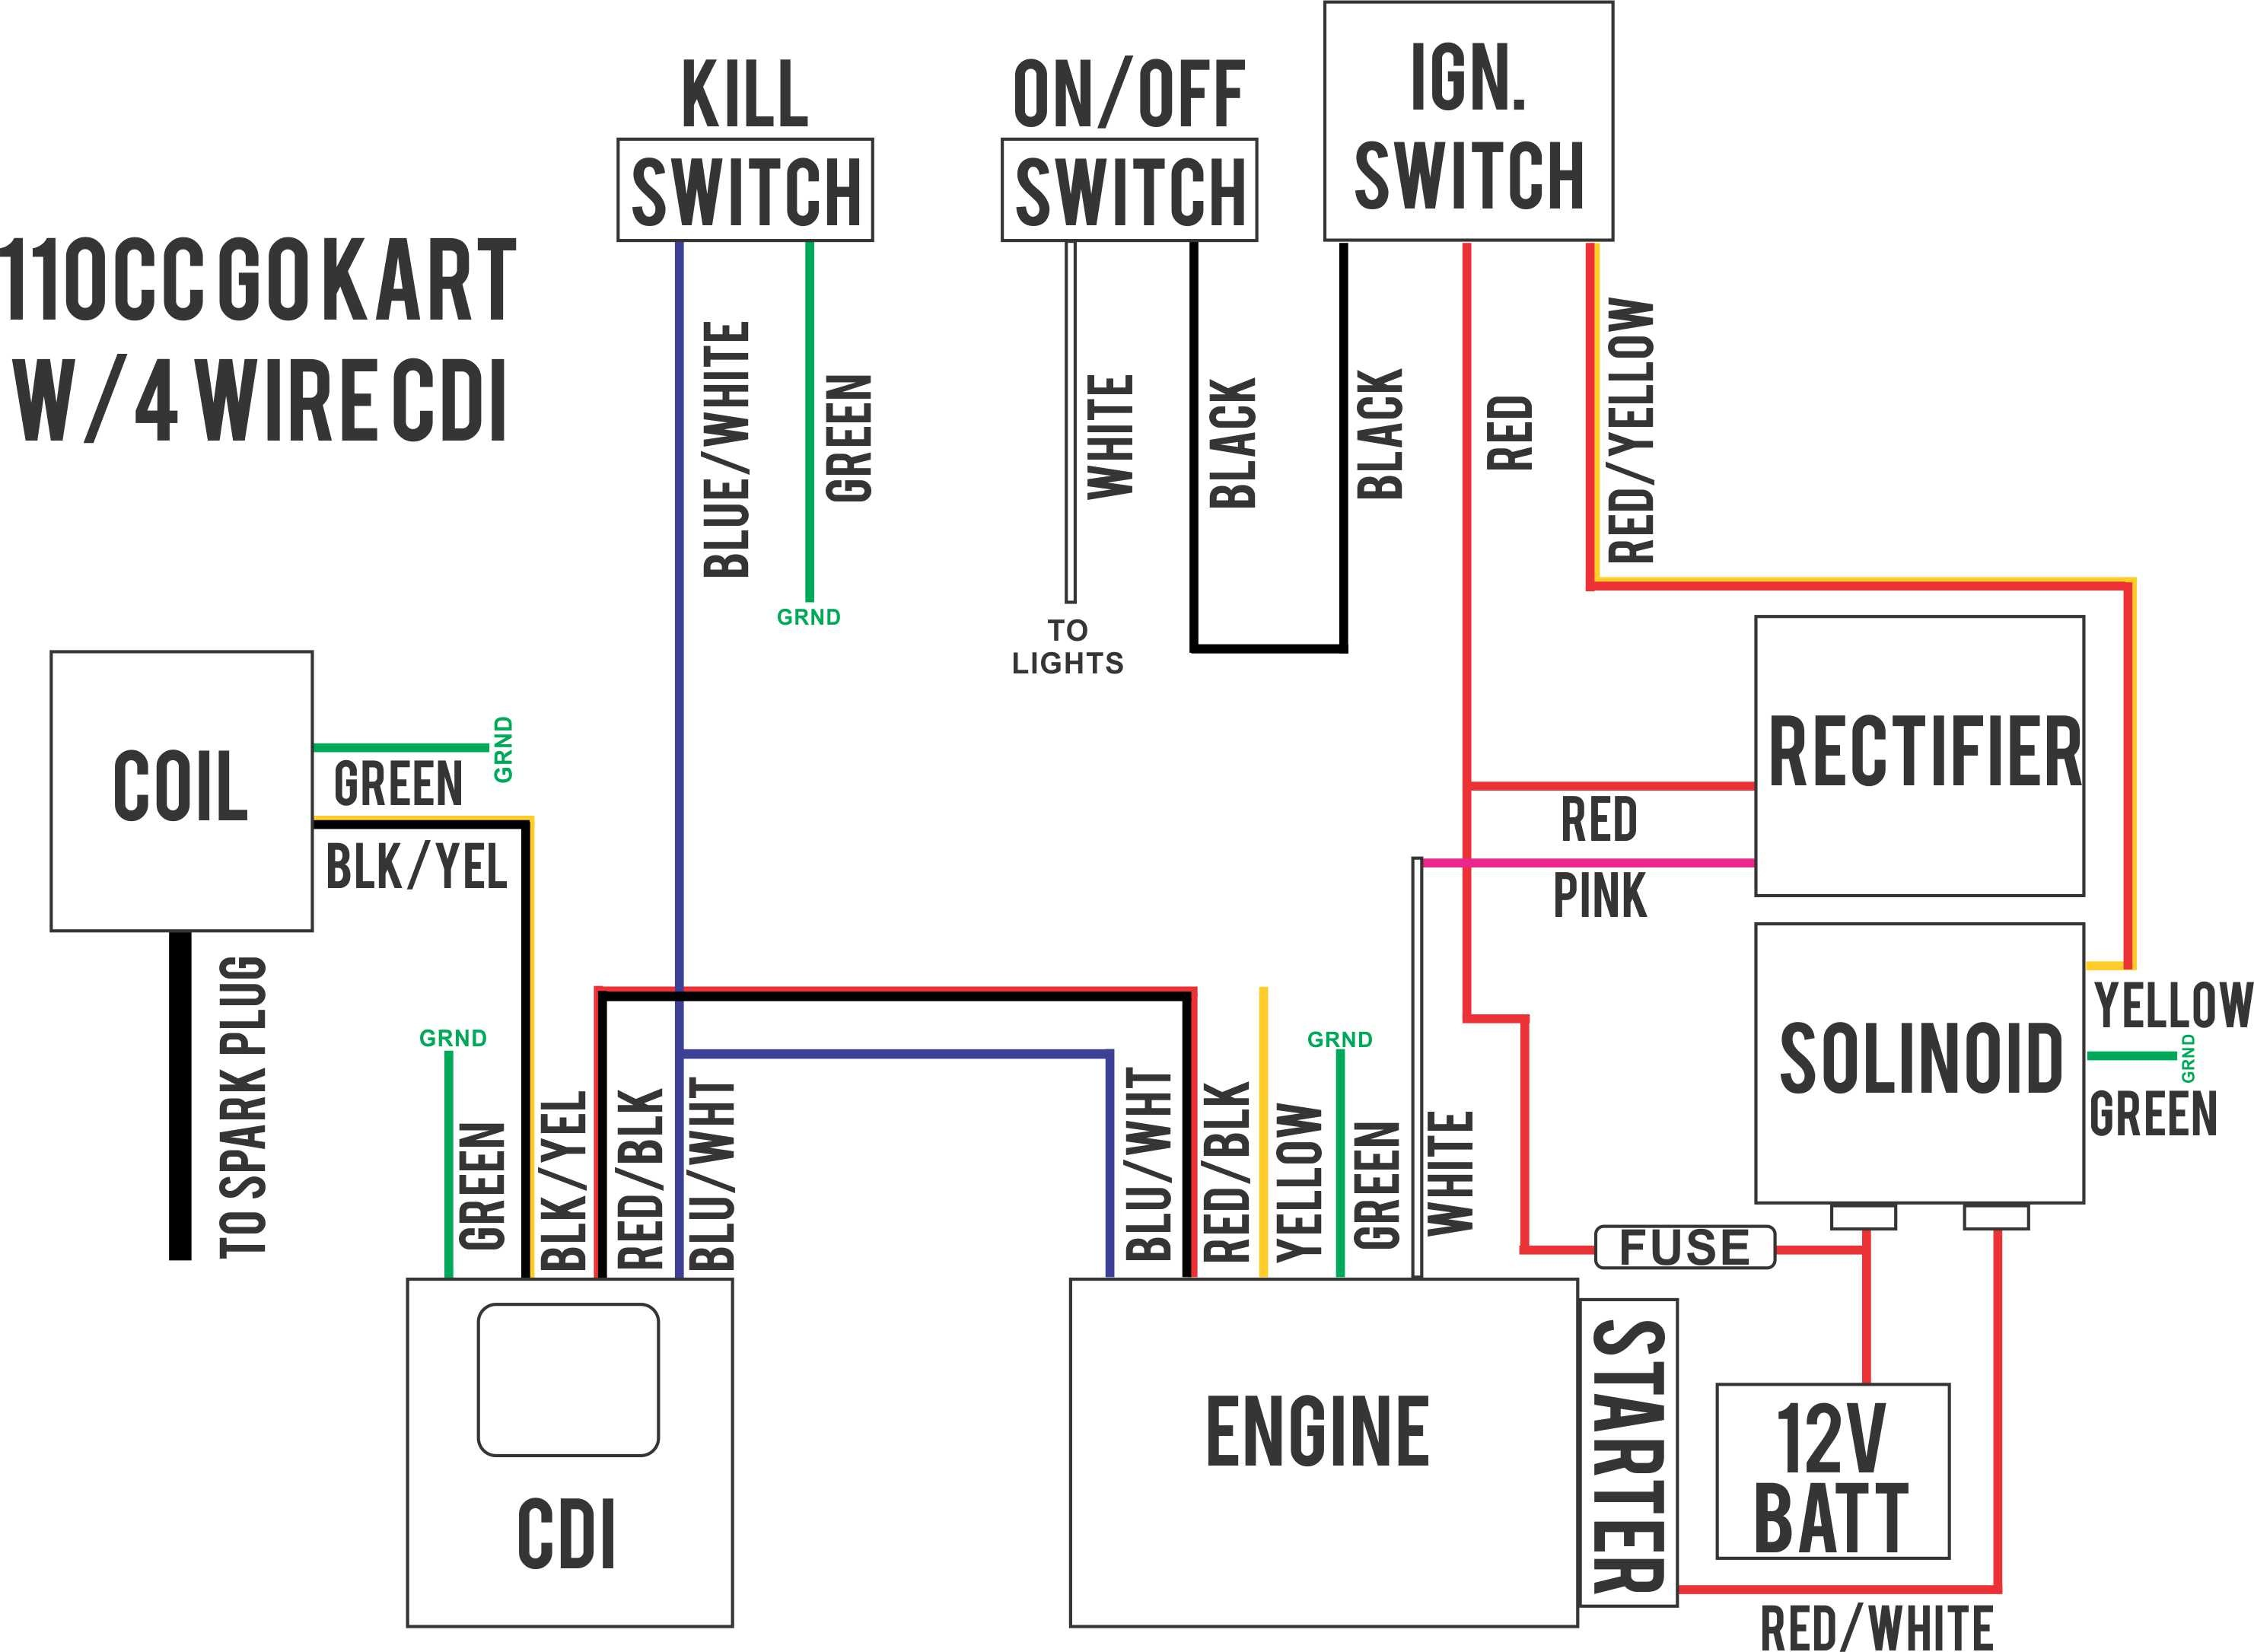 125cc pit bike wiring diagram wiring diagram125cc wiring diagrams wiring diagram progresif125cc atv wiring wiring diagram progresif 125cc chinese quad wiring diagrams